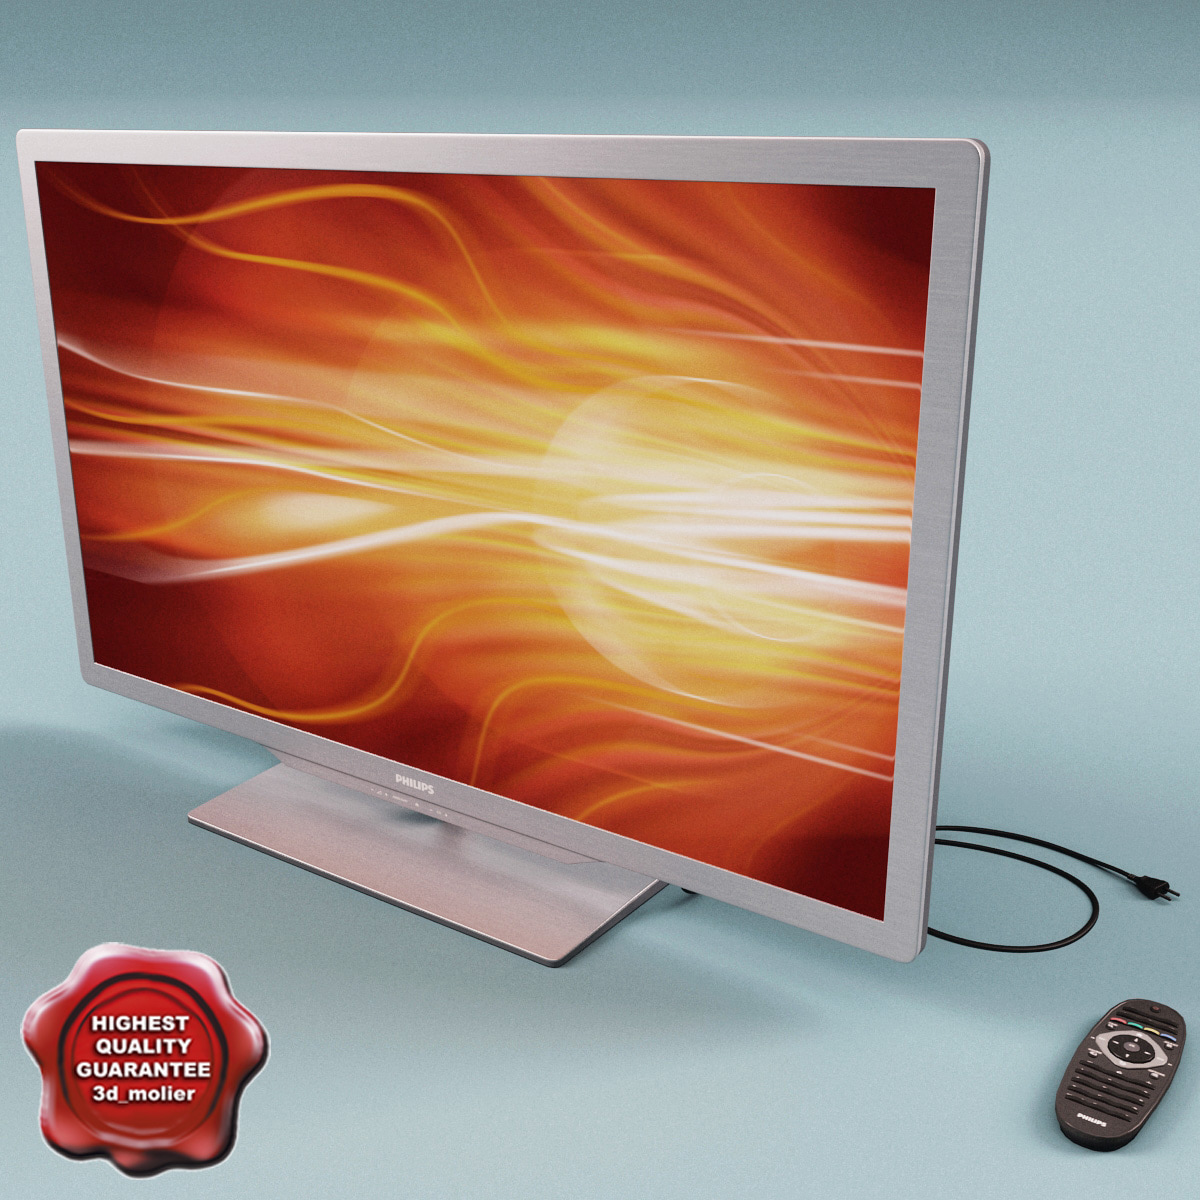 Philips_Smart_LED_TV_Collection_00.jpg